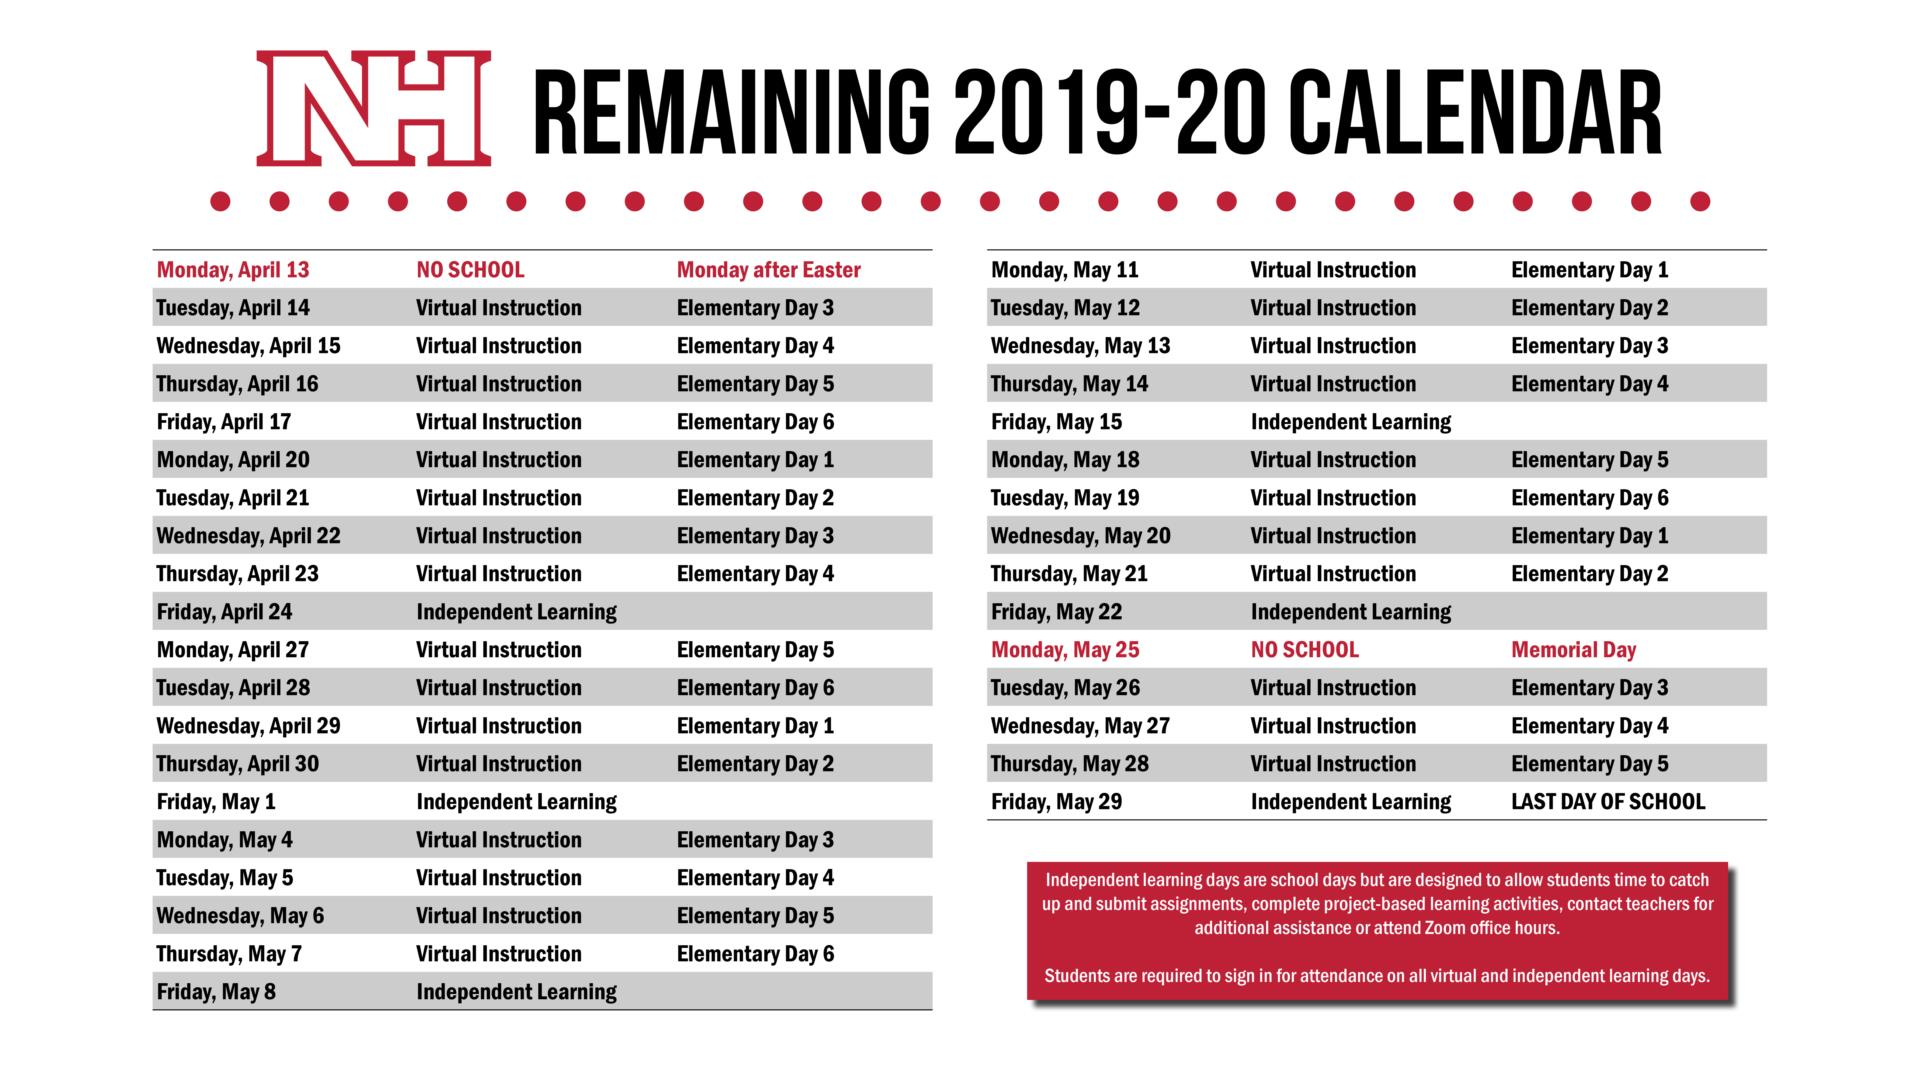 Graphic showing the remaining dates of the 2019-20 school year